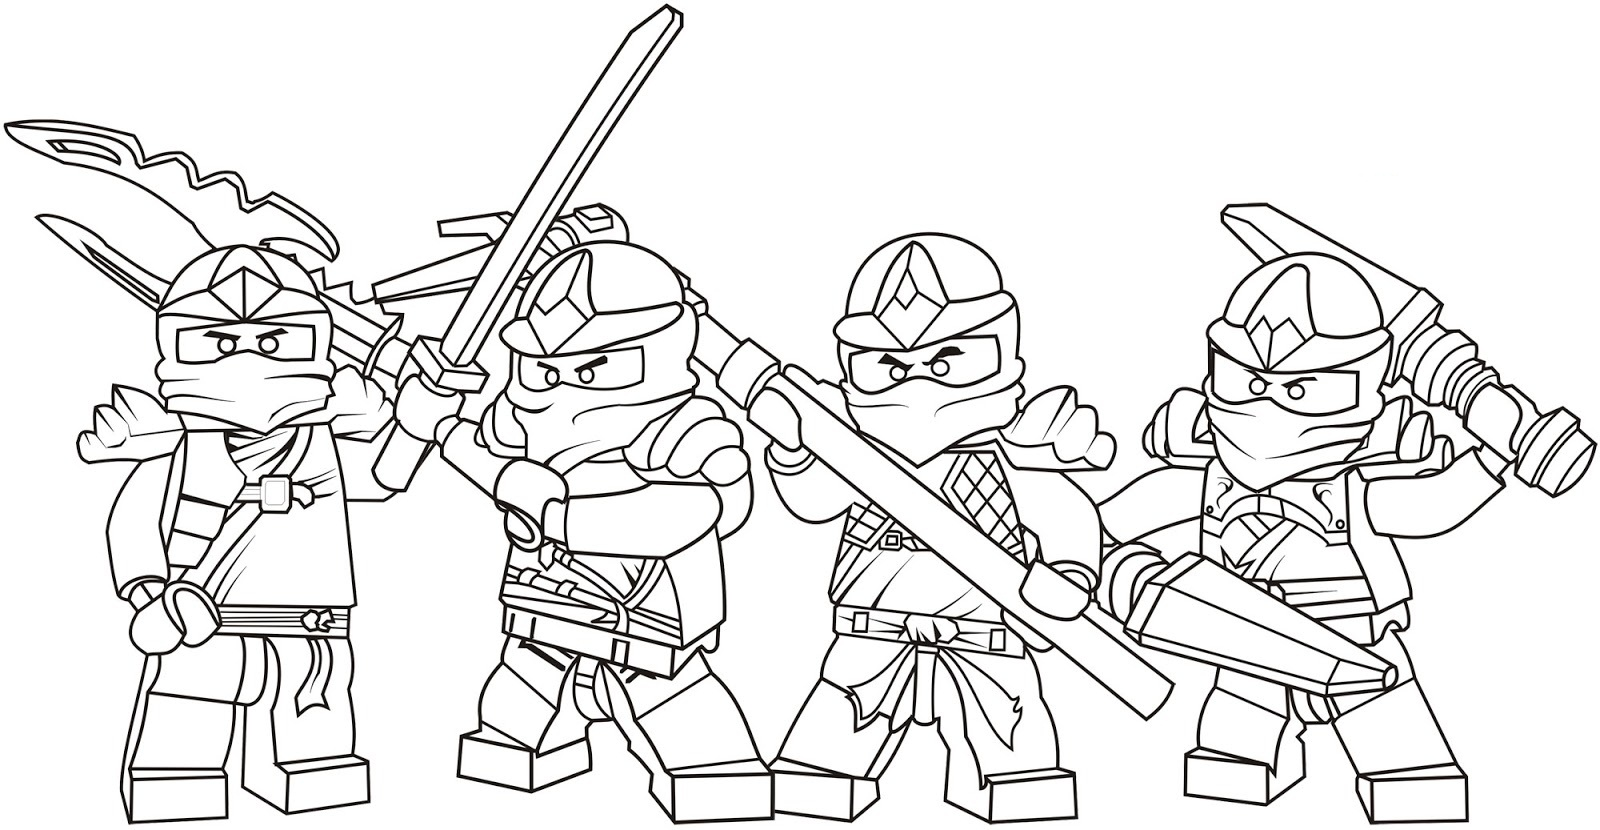 Lego coloring pages best coloring pages for kids Coloring book for toddlers